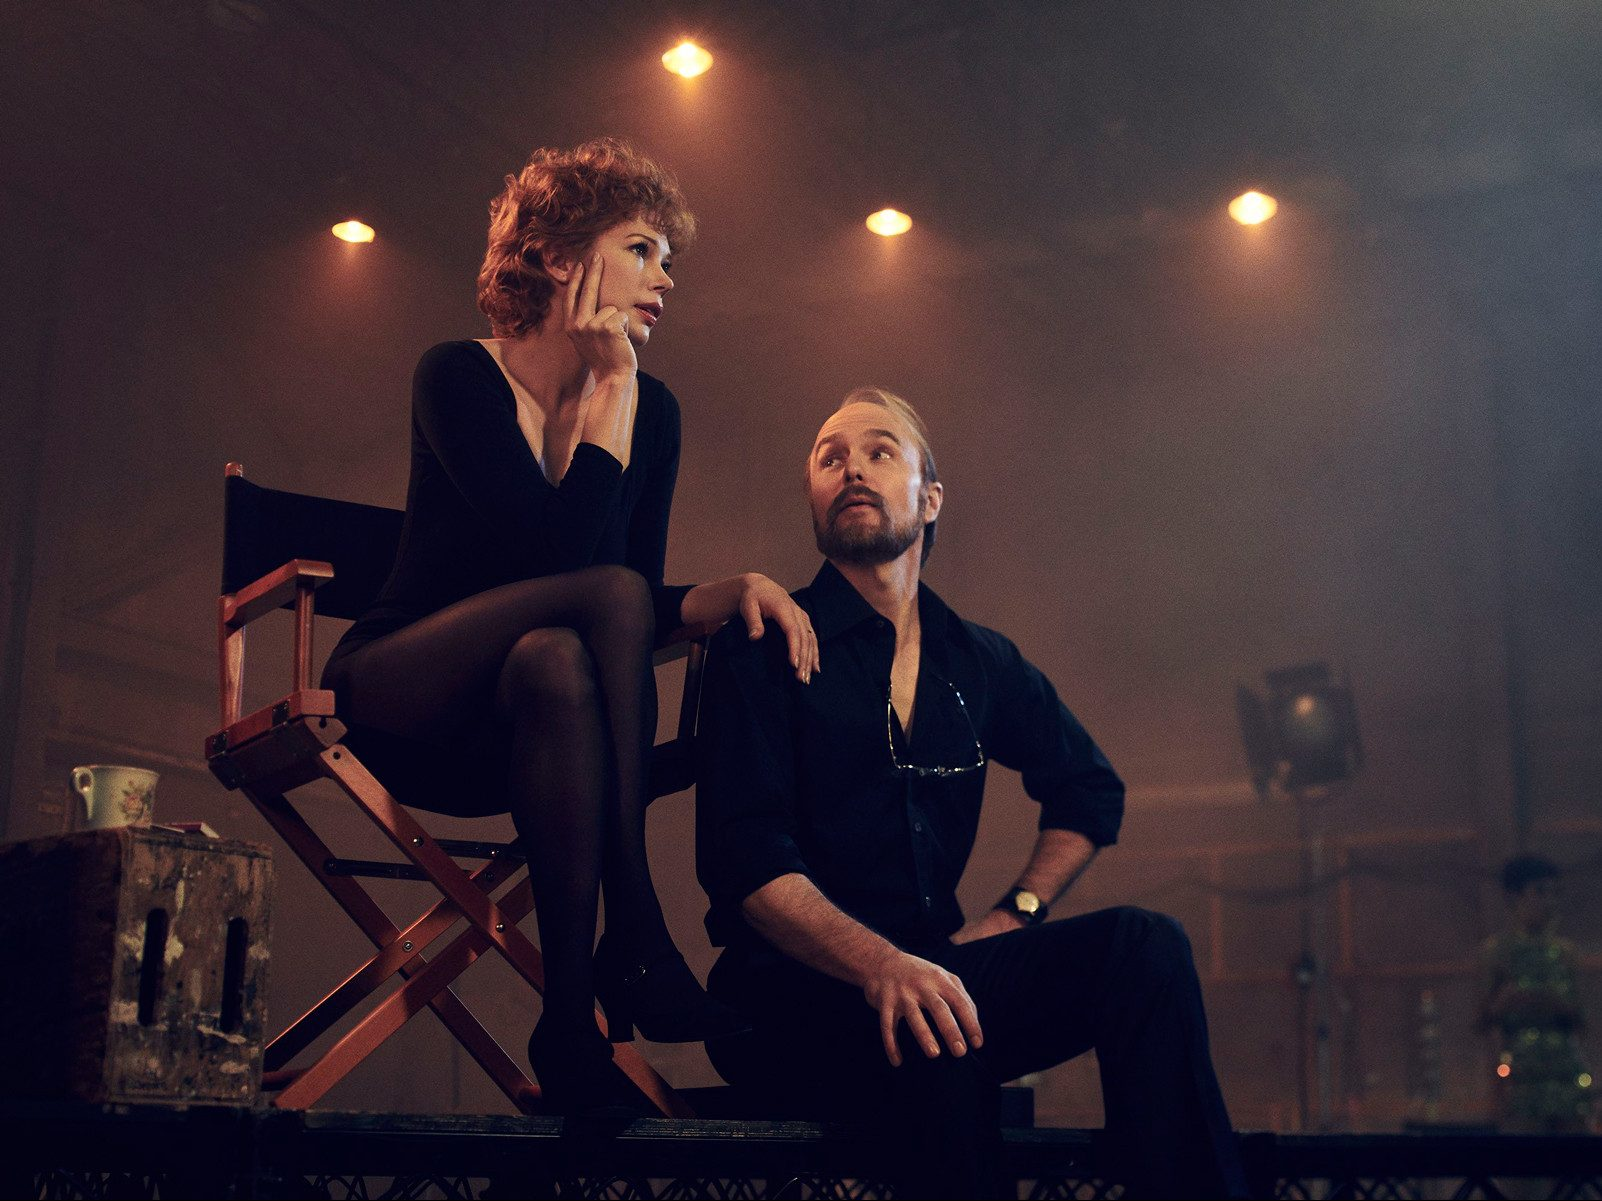 fosse/verdon sam rockwell michelle williams fx series